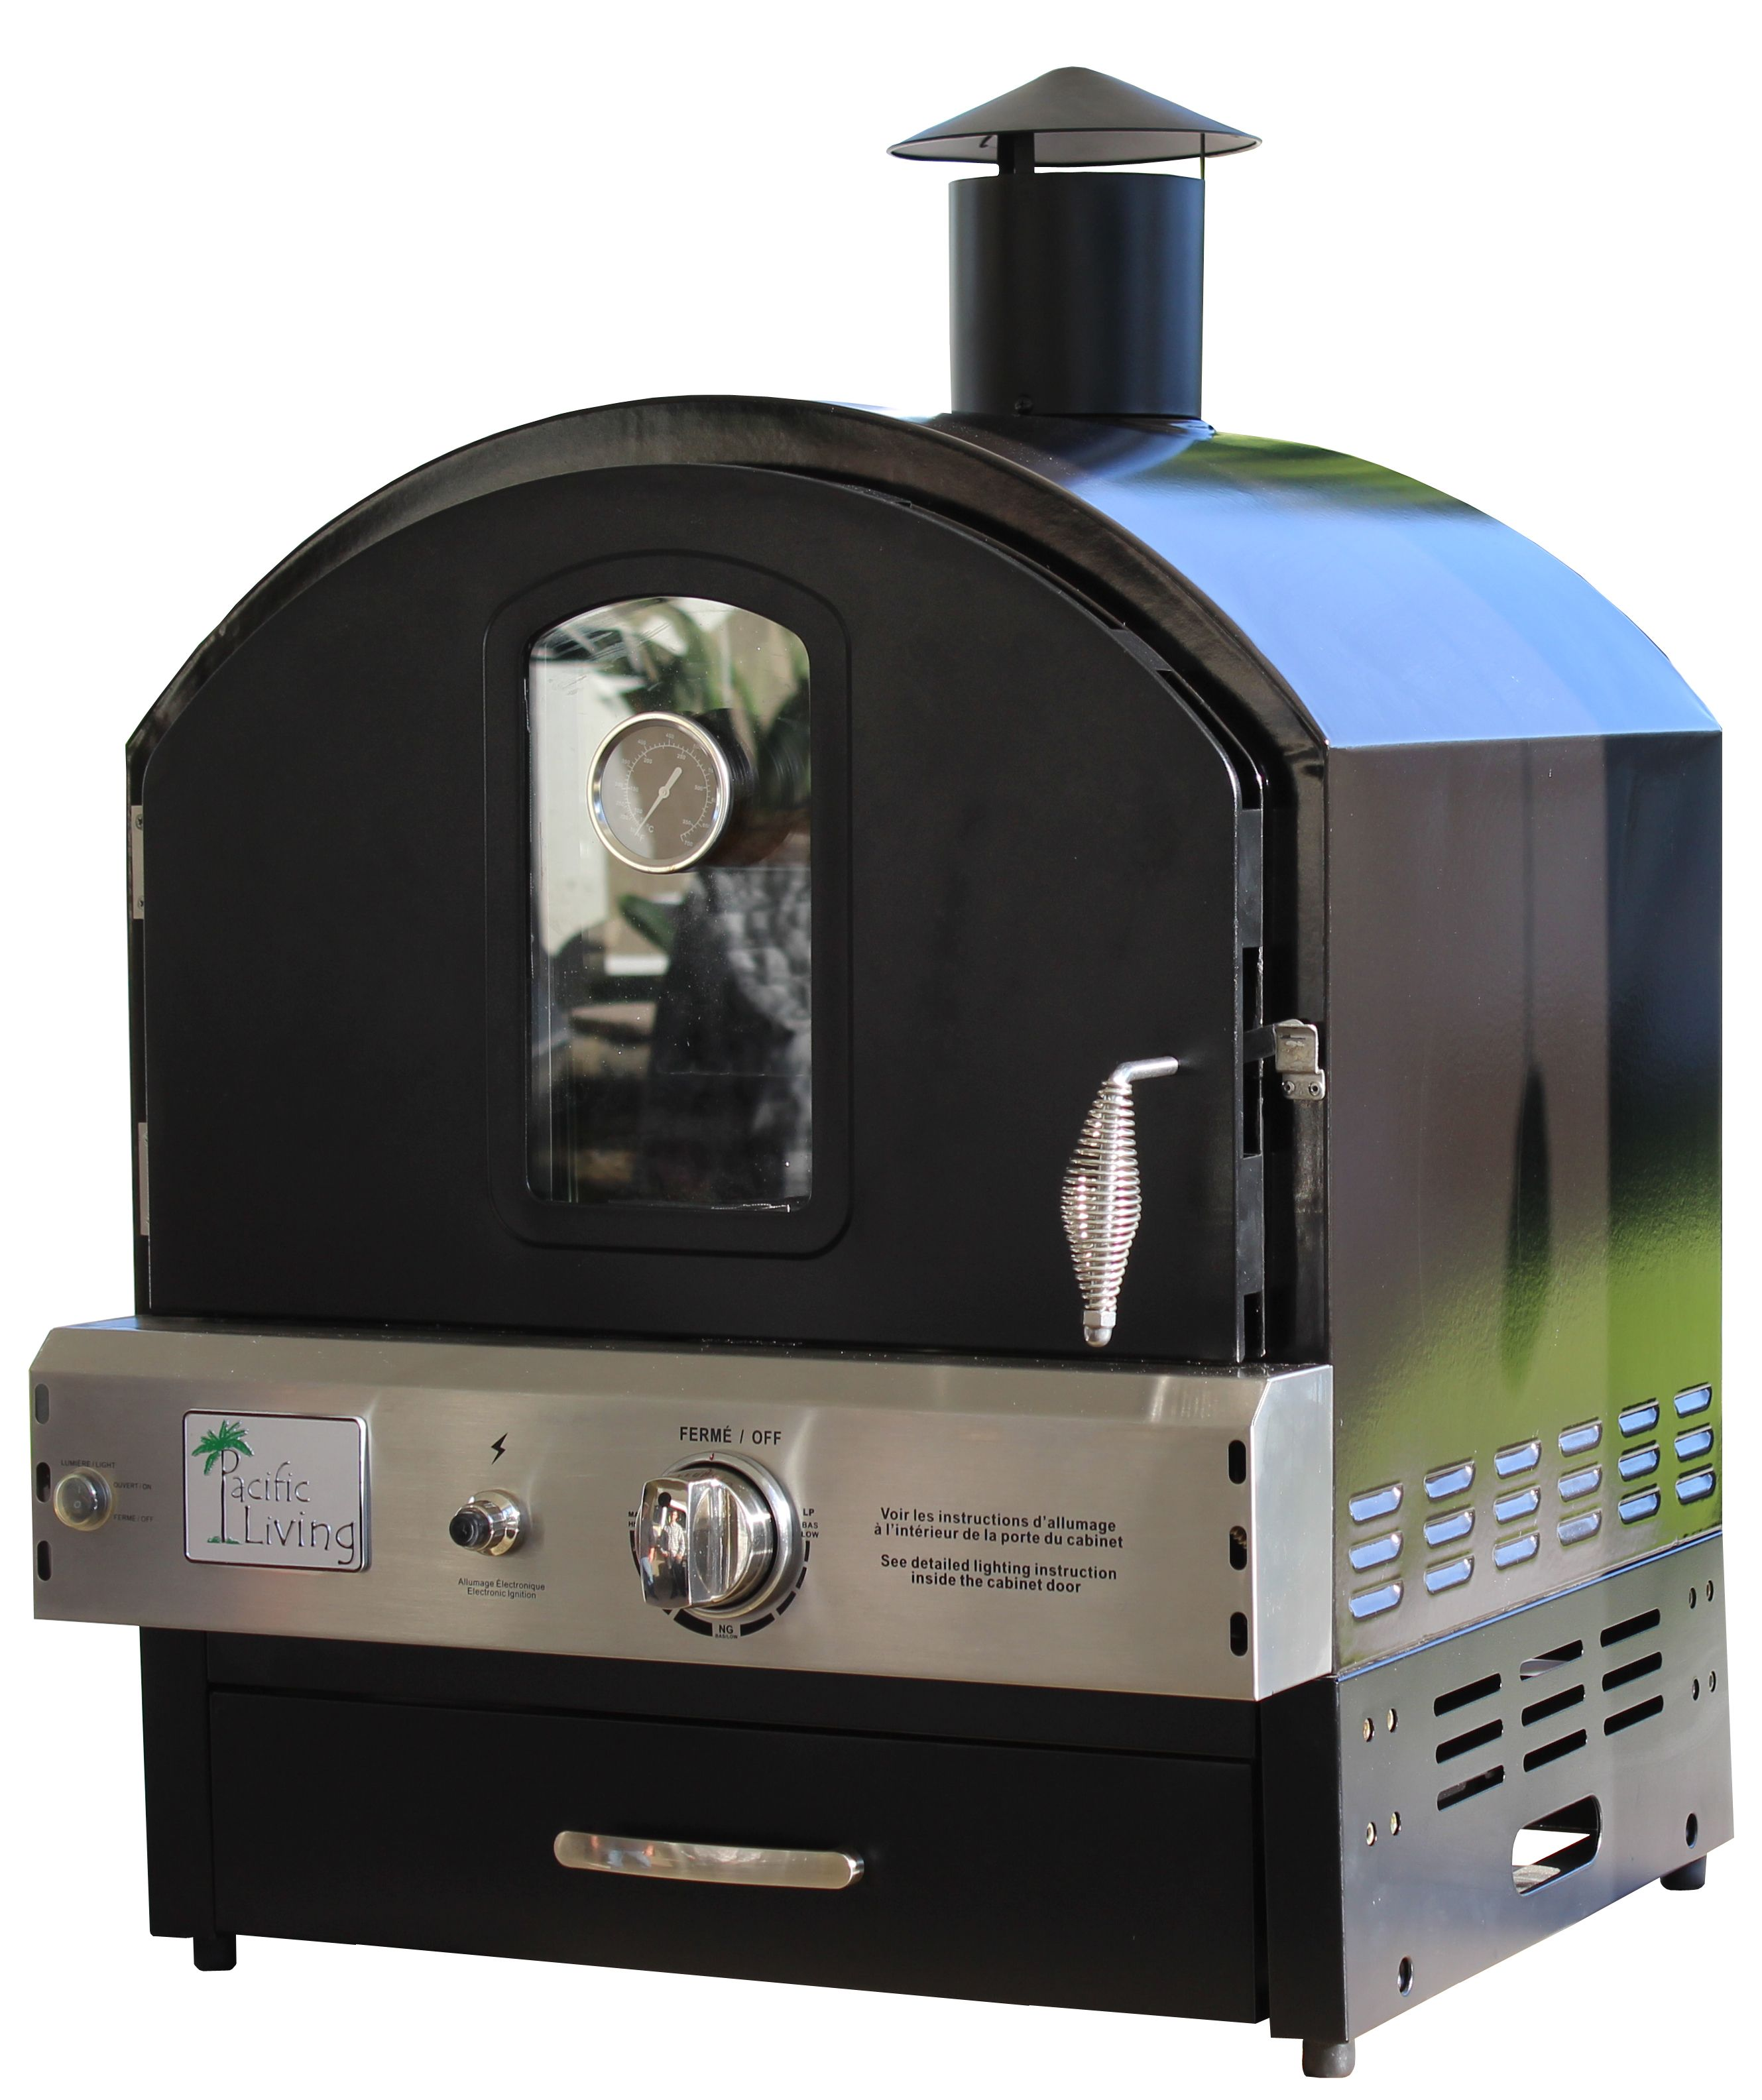 Pacific Living Outdoor Build In Or Counter Top Large Capacity Gas Oven With  Pizza Stone And Smoker Box, Black Powder Coat